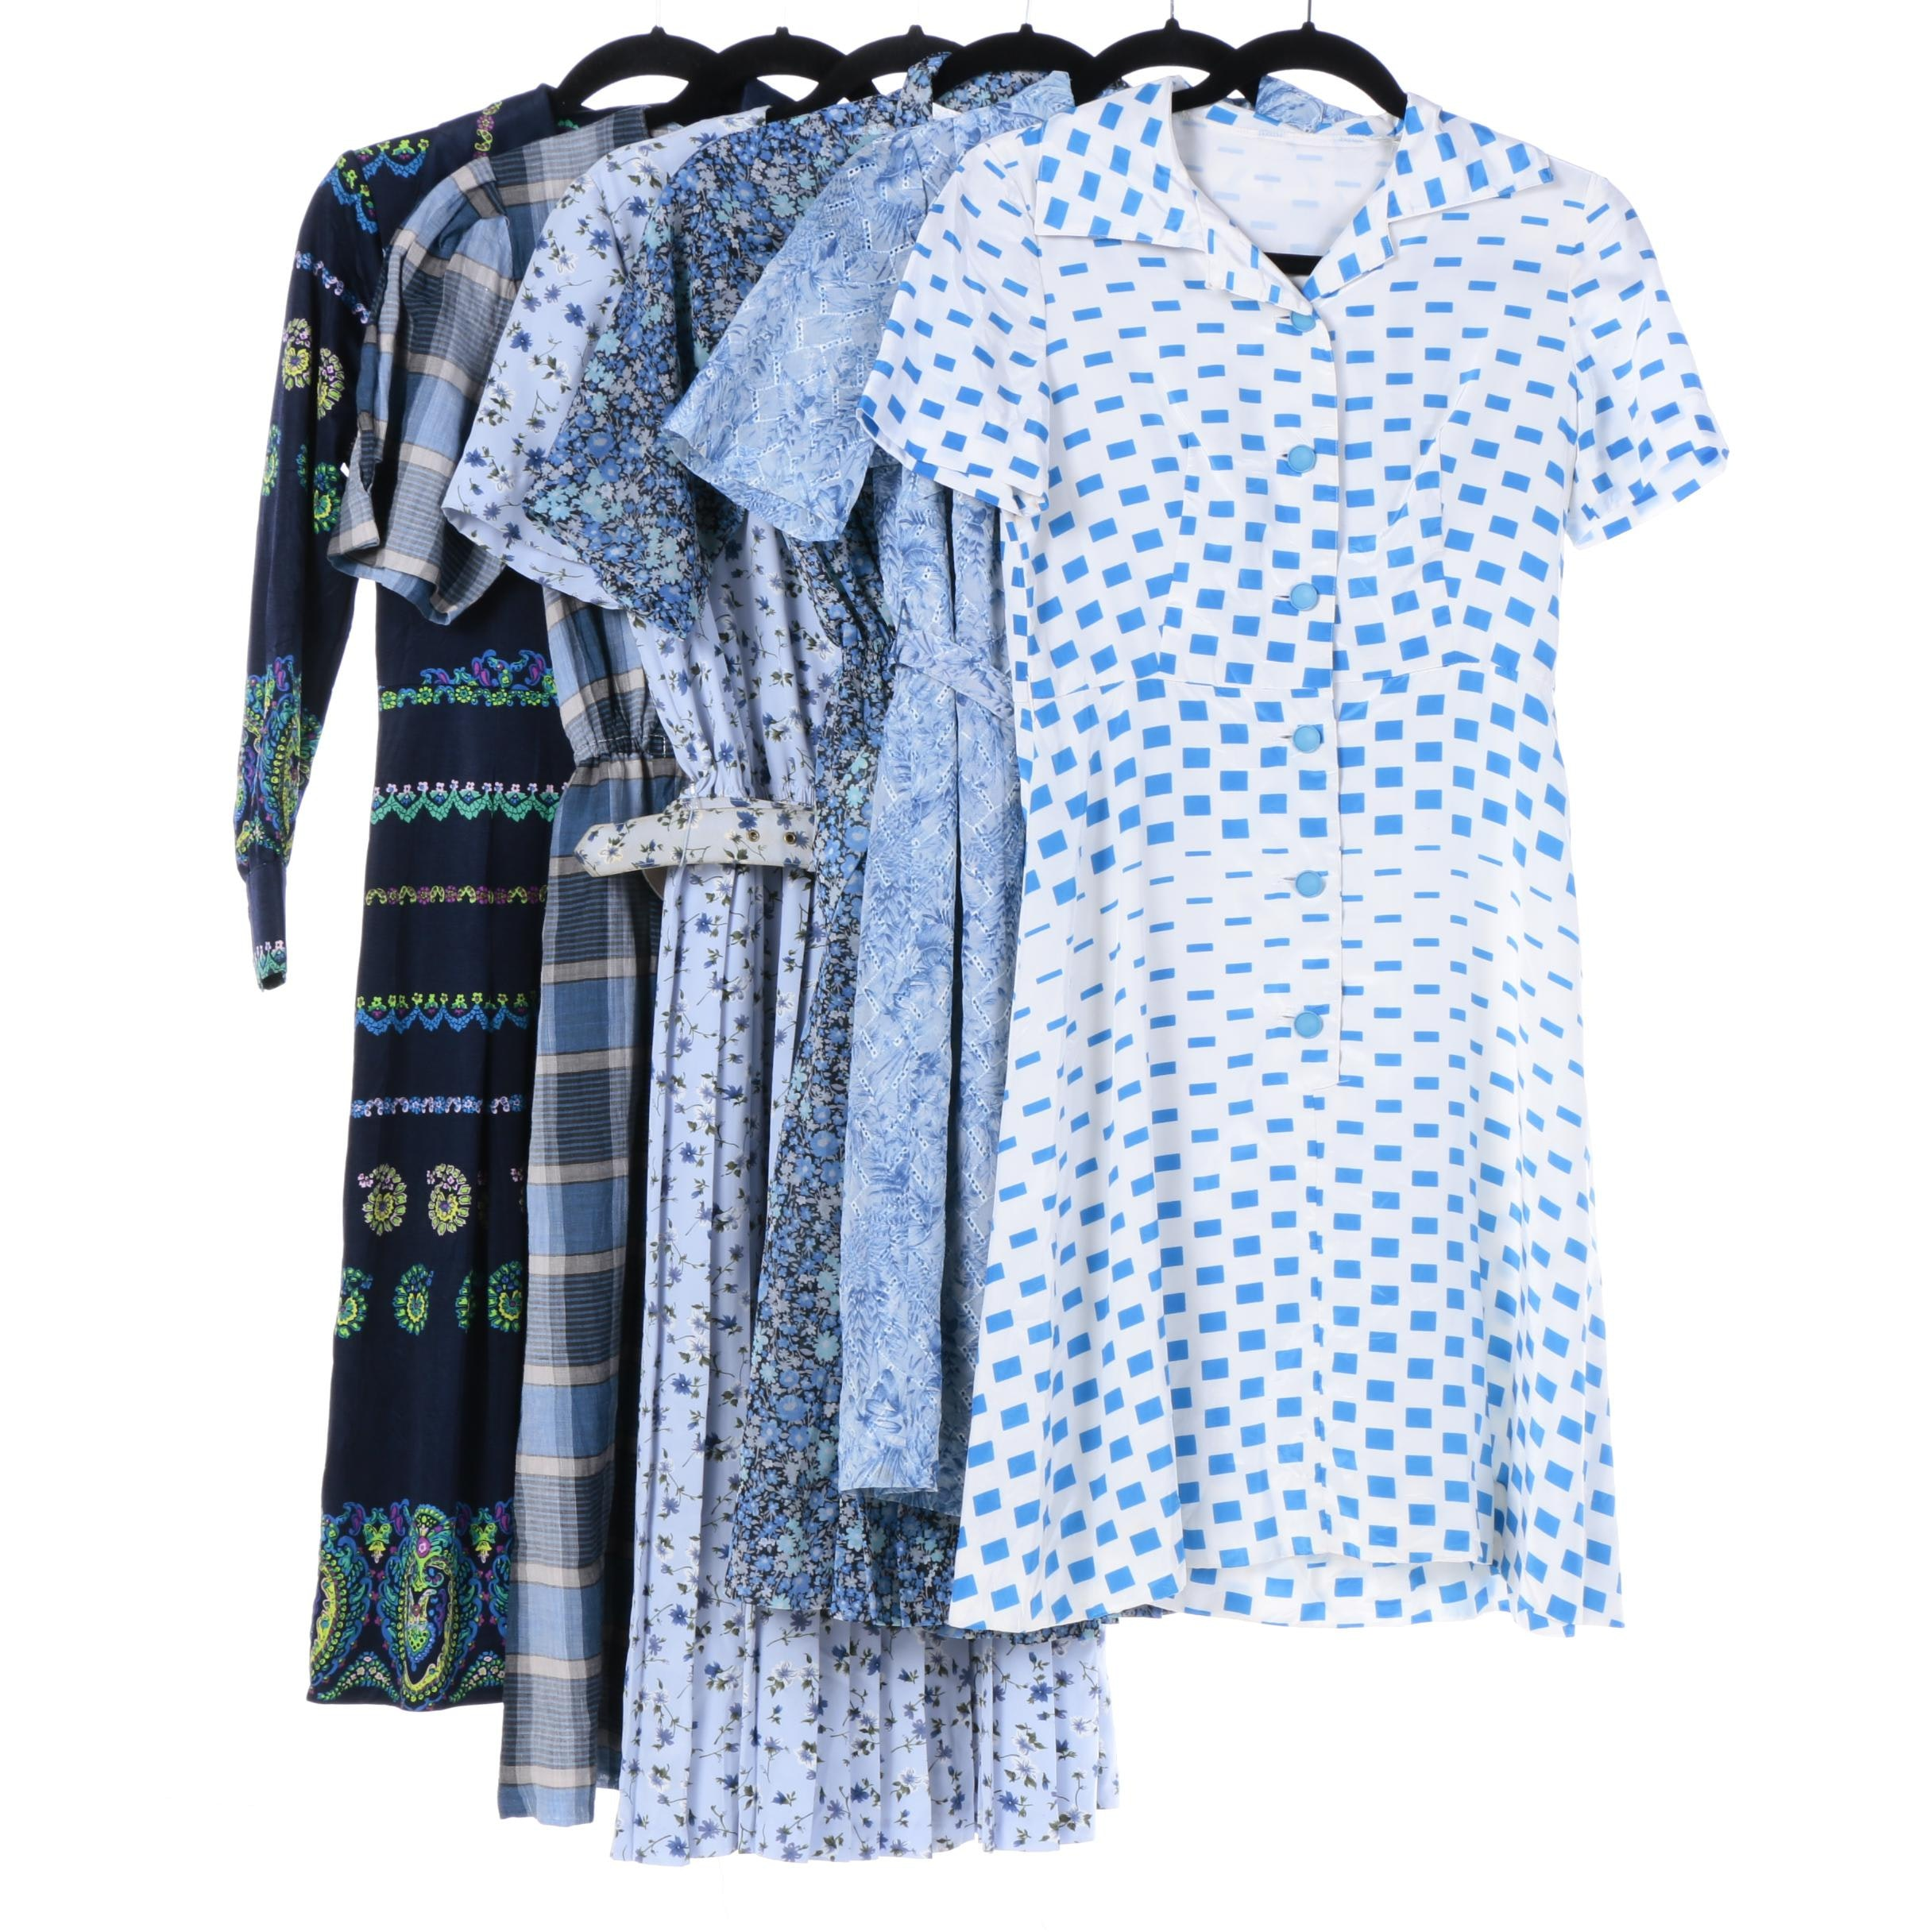 Women's Modern and Vintage Blue Day Dresses Including Leslie Fay